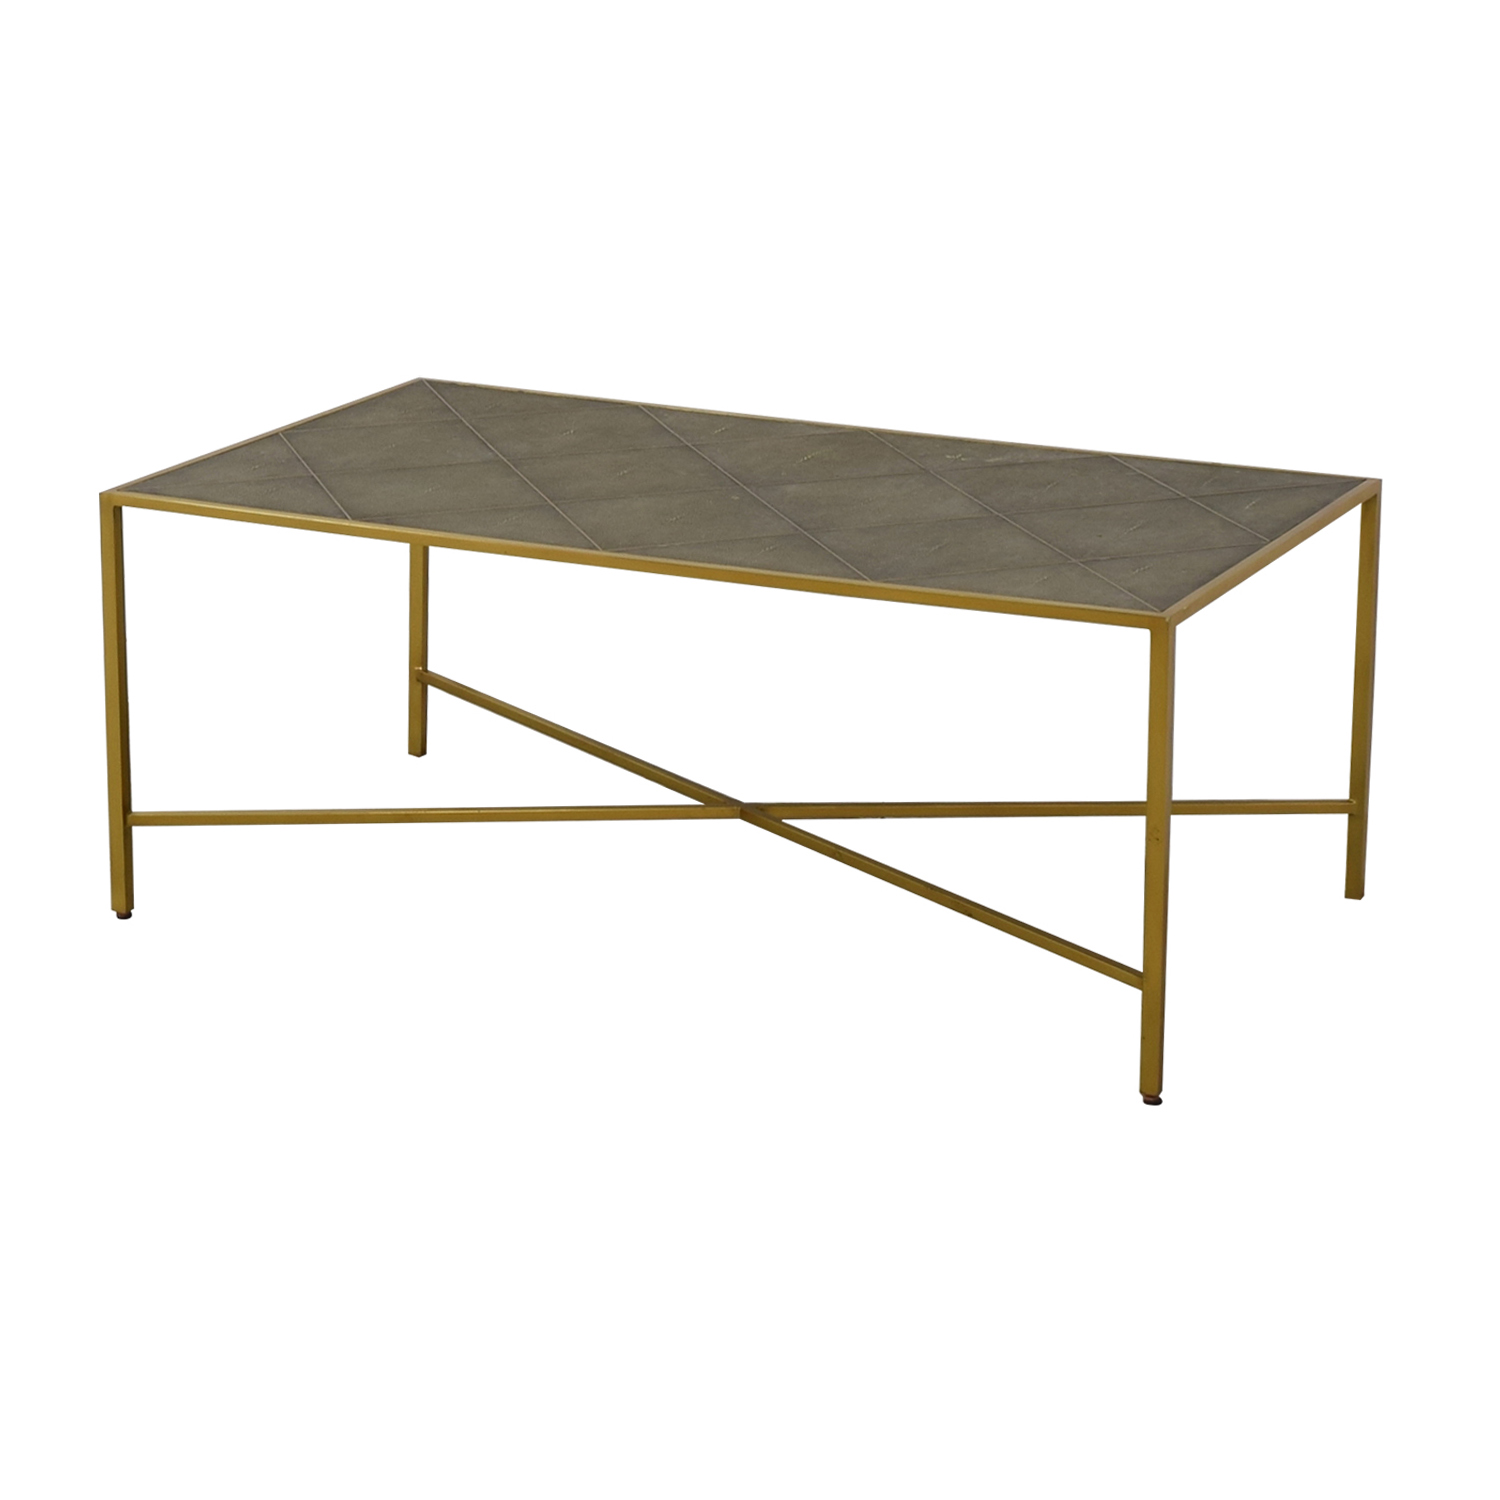 Attrayant 79% OFF   One Kings Lane One Kings Lane Theodore Alexander Shagreen Coffee  Table / Tables